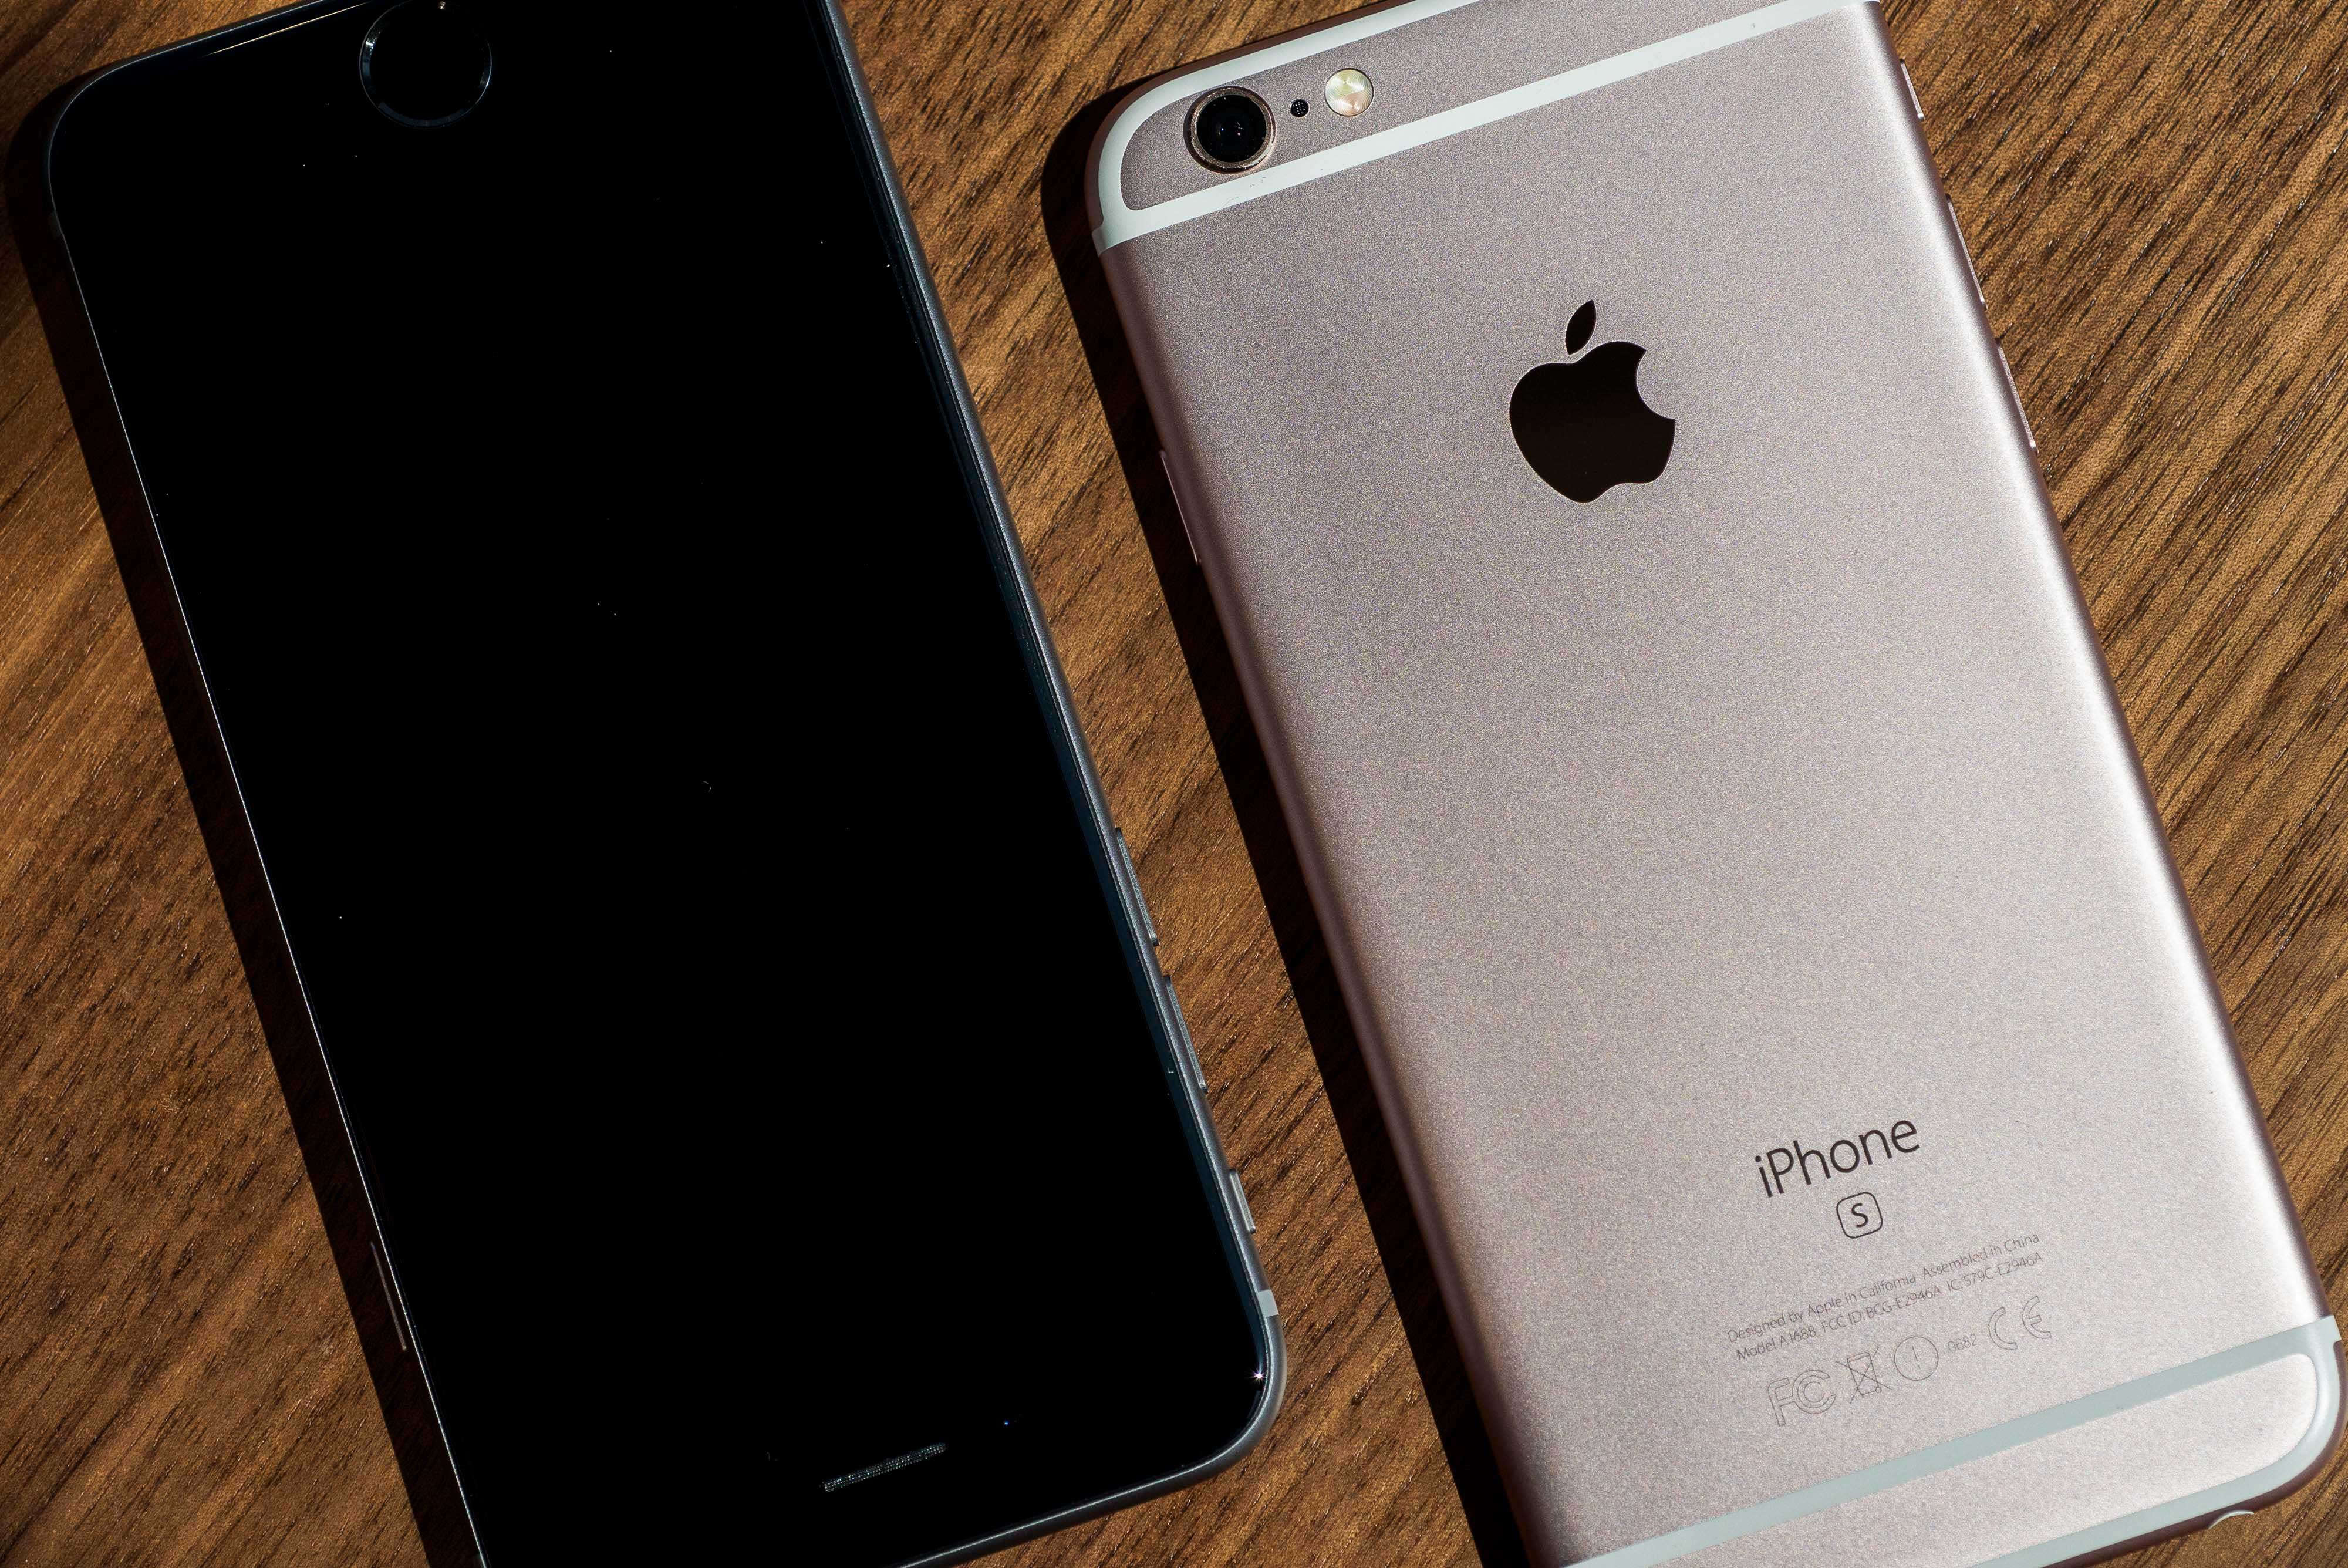 Unboxing Apple Inc. iPhone 6s